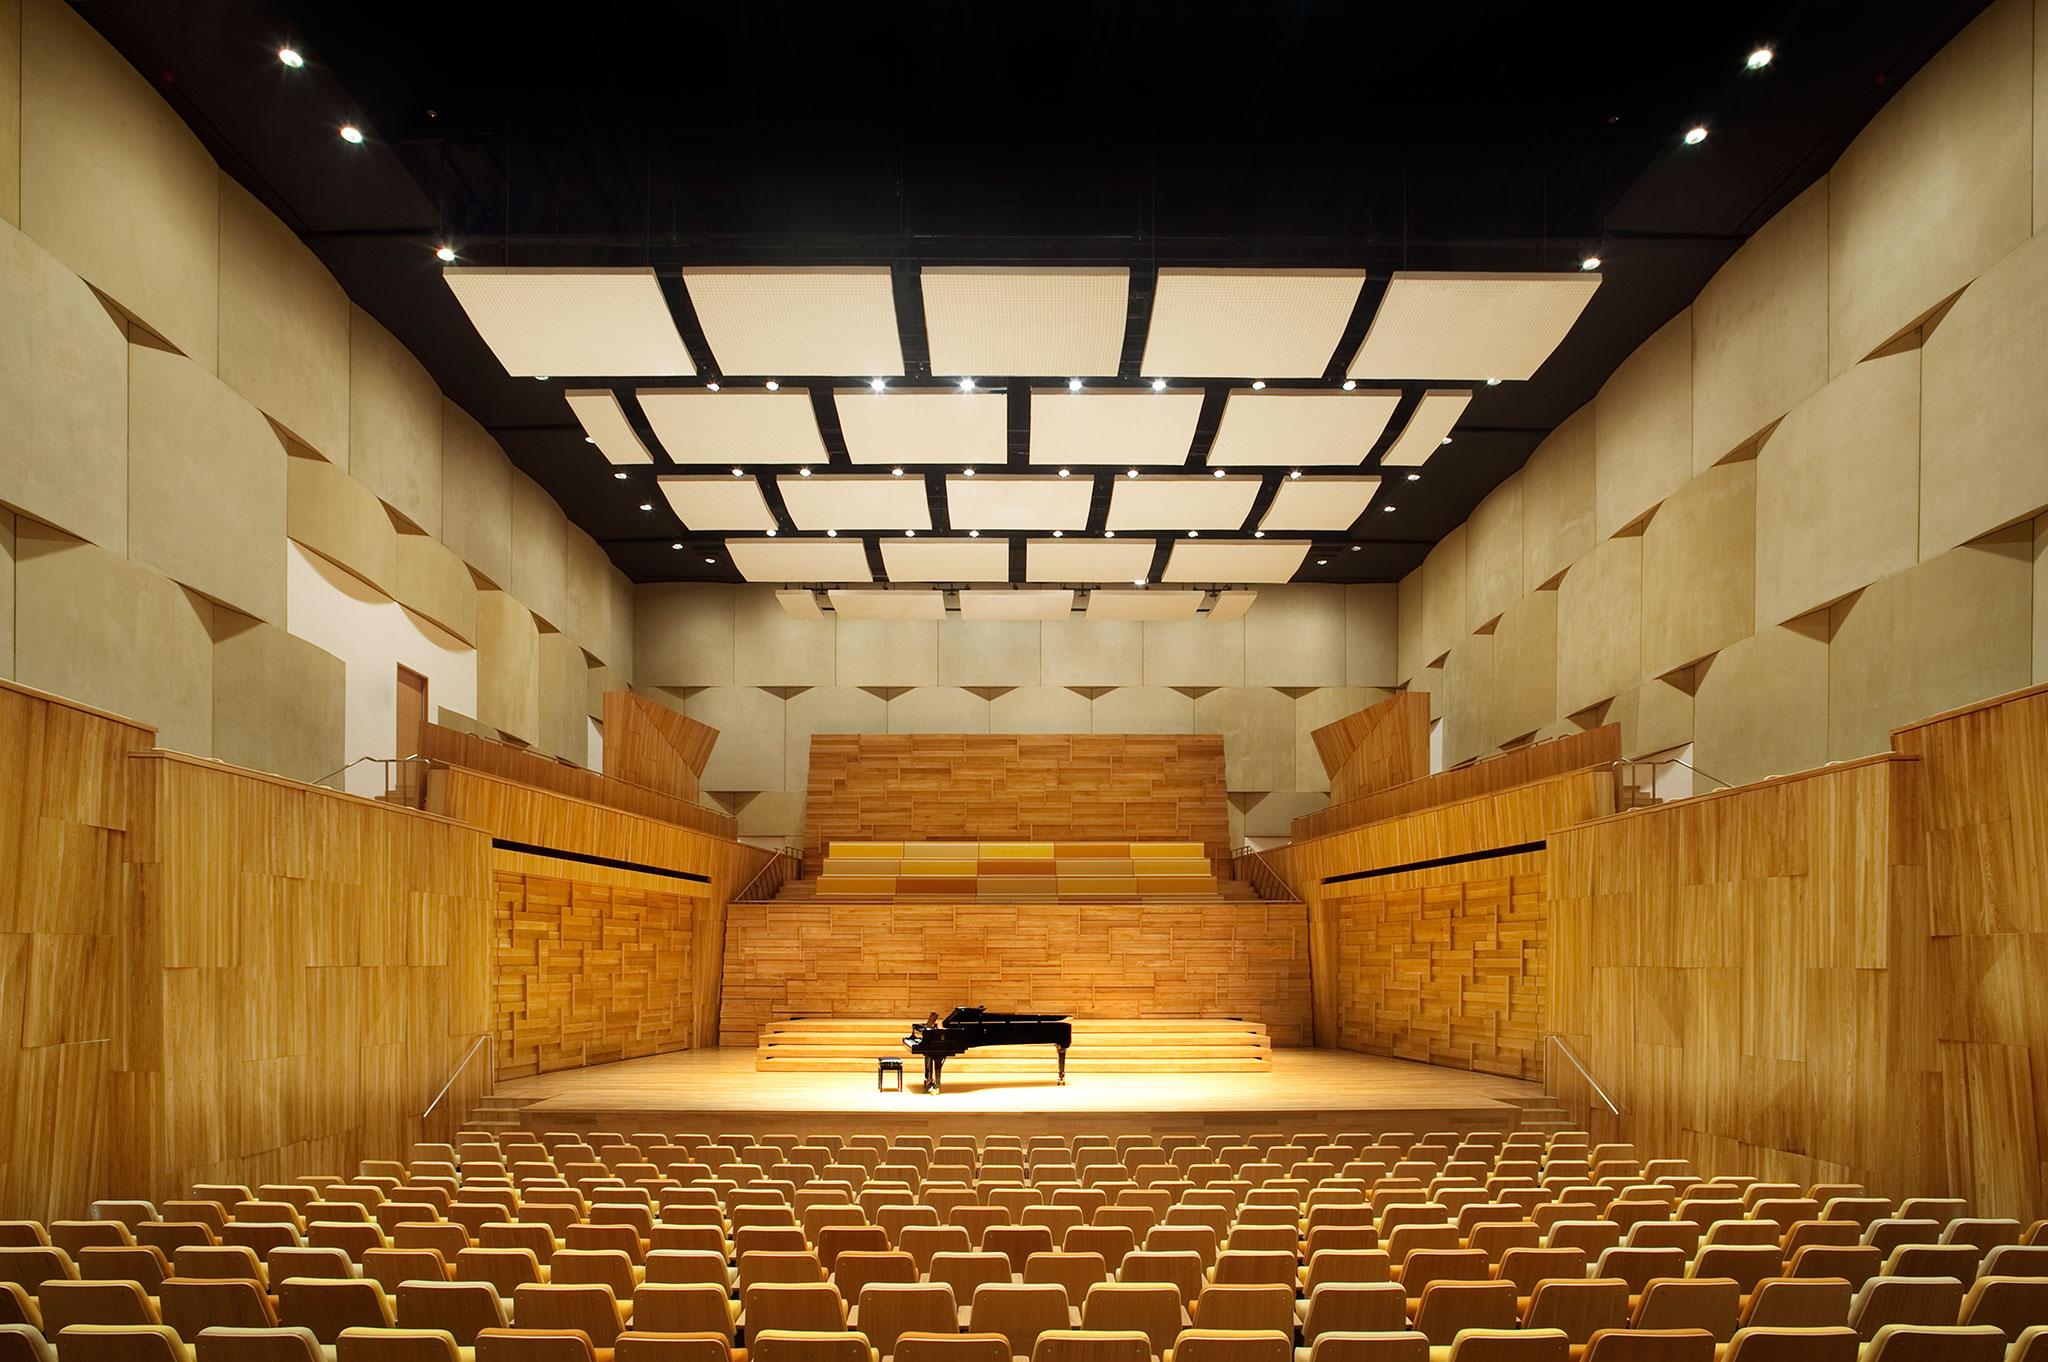 Music Theatre, School of The Arts (Picture source: https://www.sota.edu.sg)